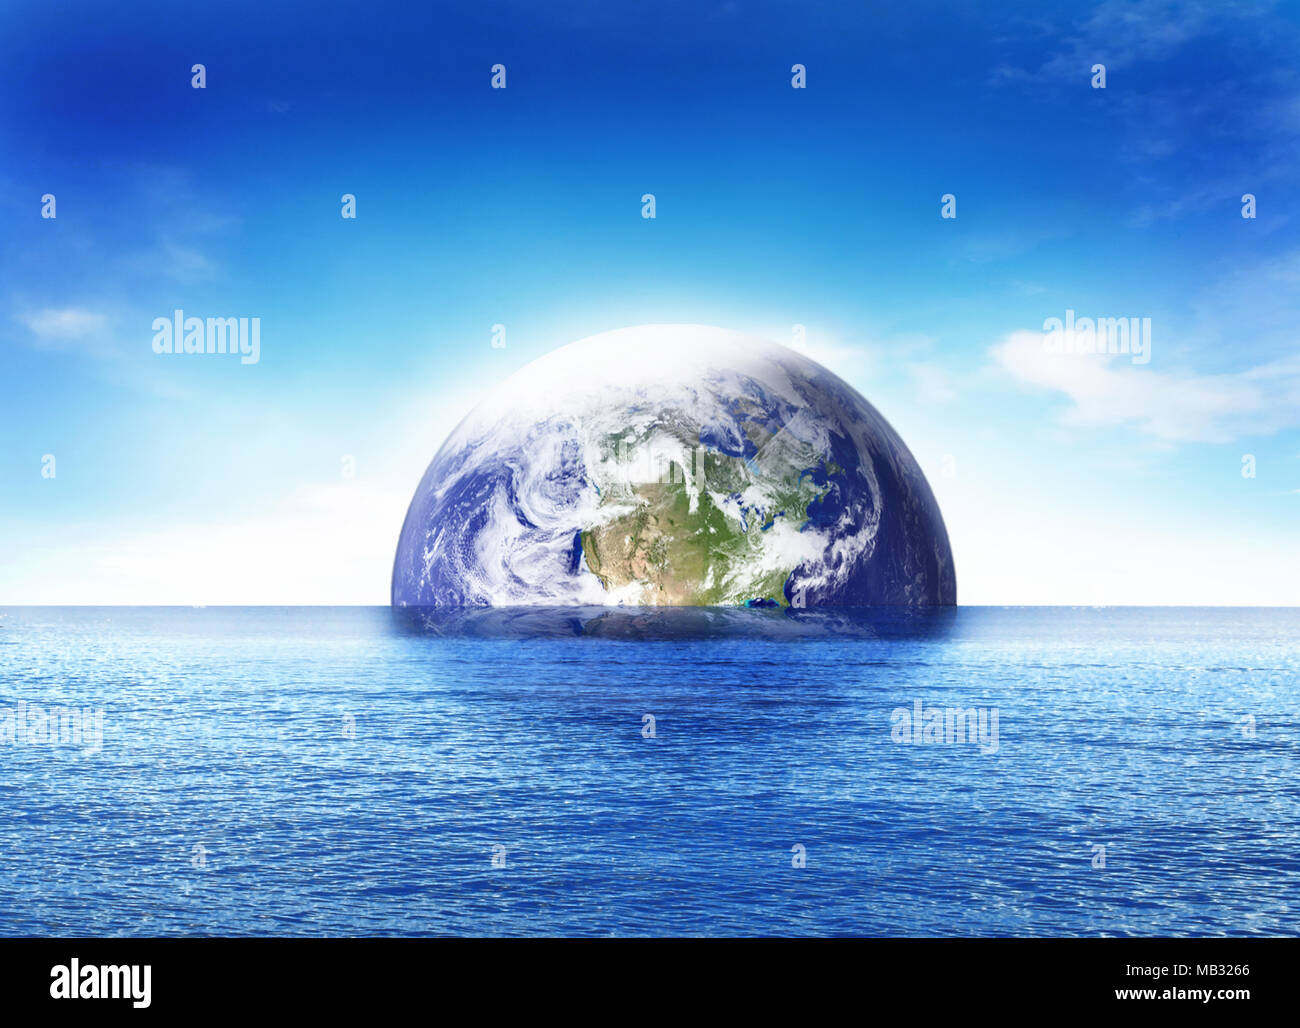 Birth of the world or doomsday scene, sinking earth globe or planet earth. Blue sea and beautiful world globe rising. - Stock Image